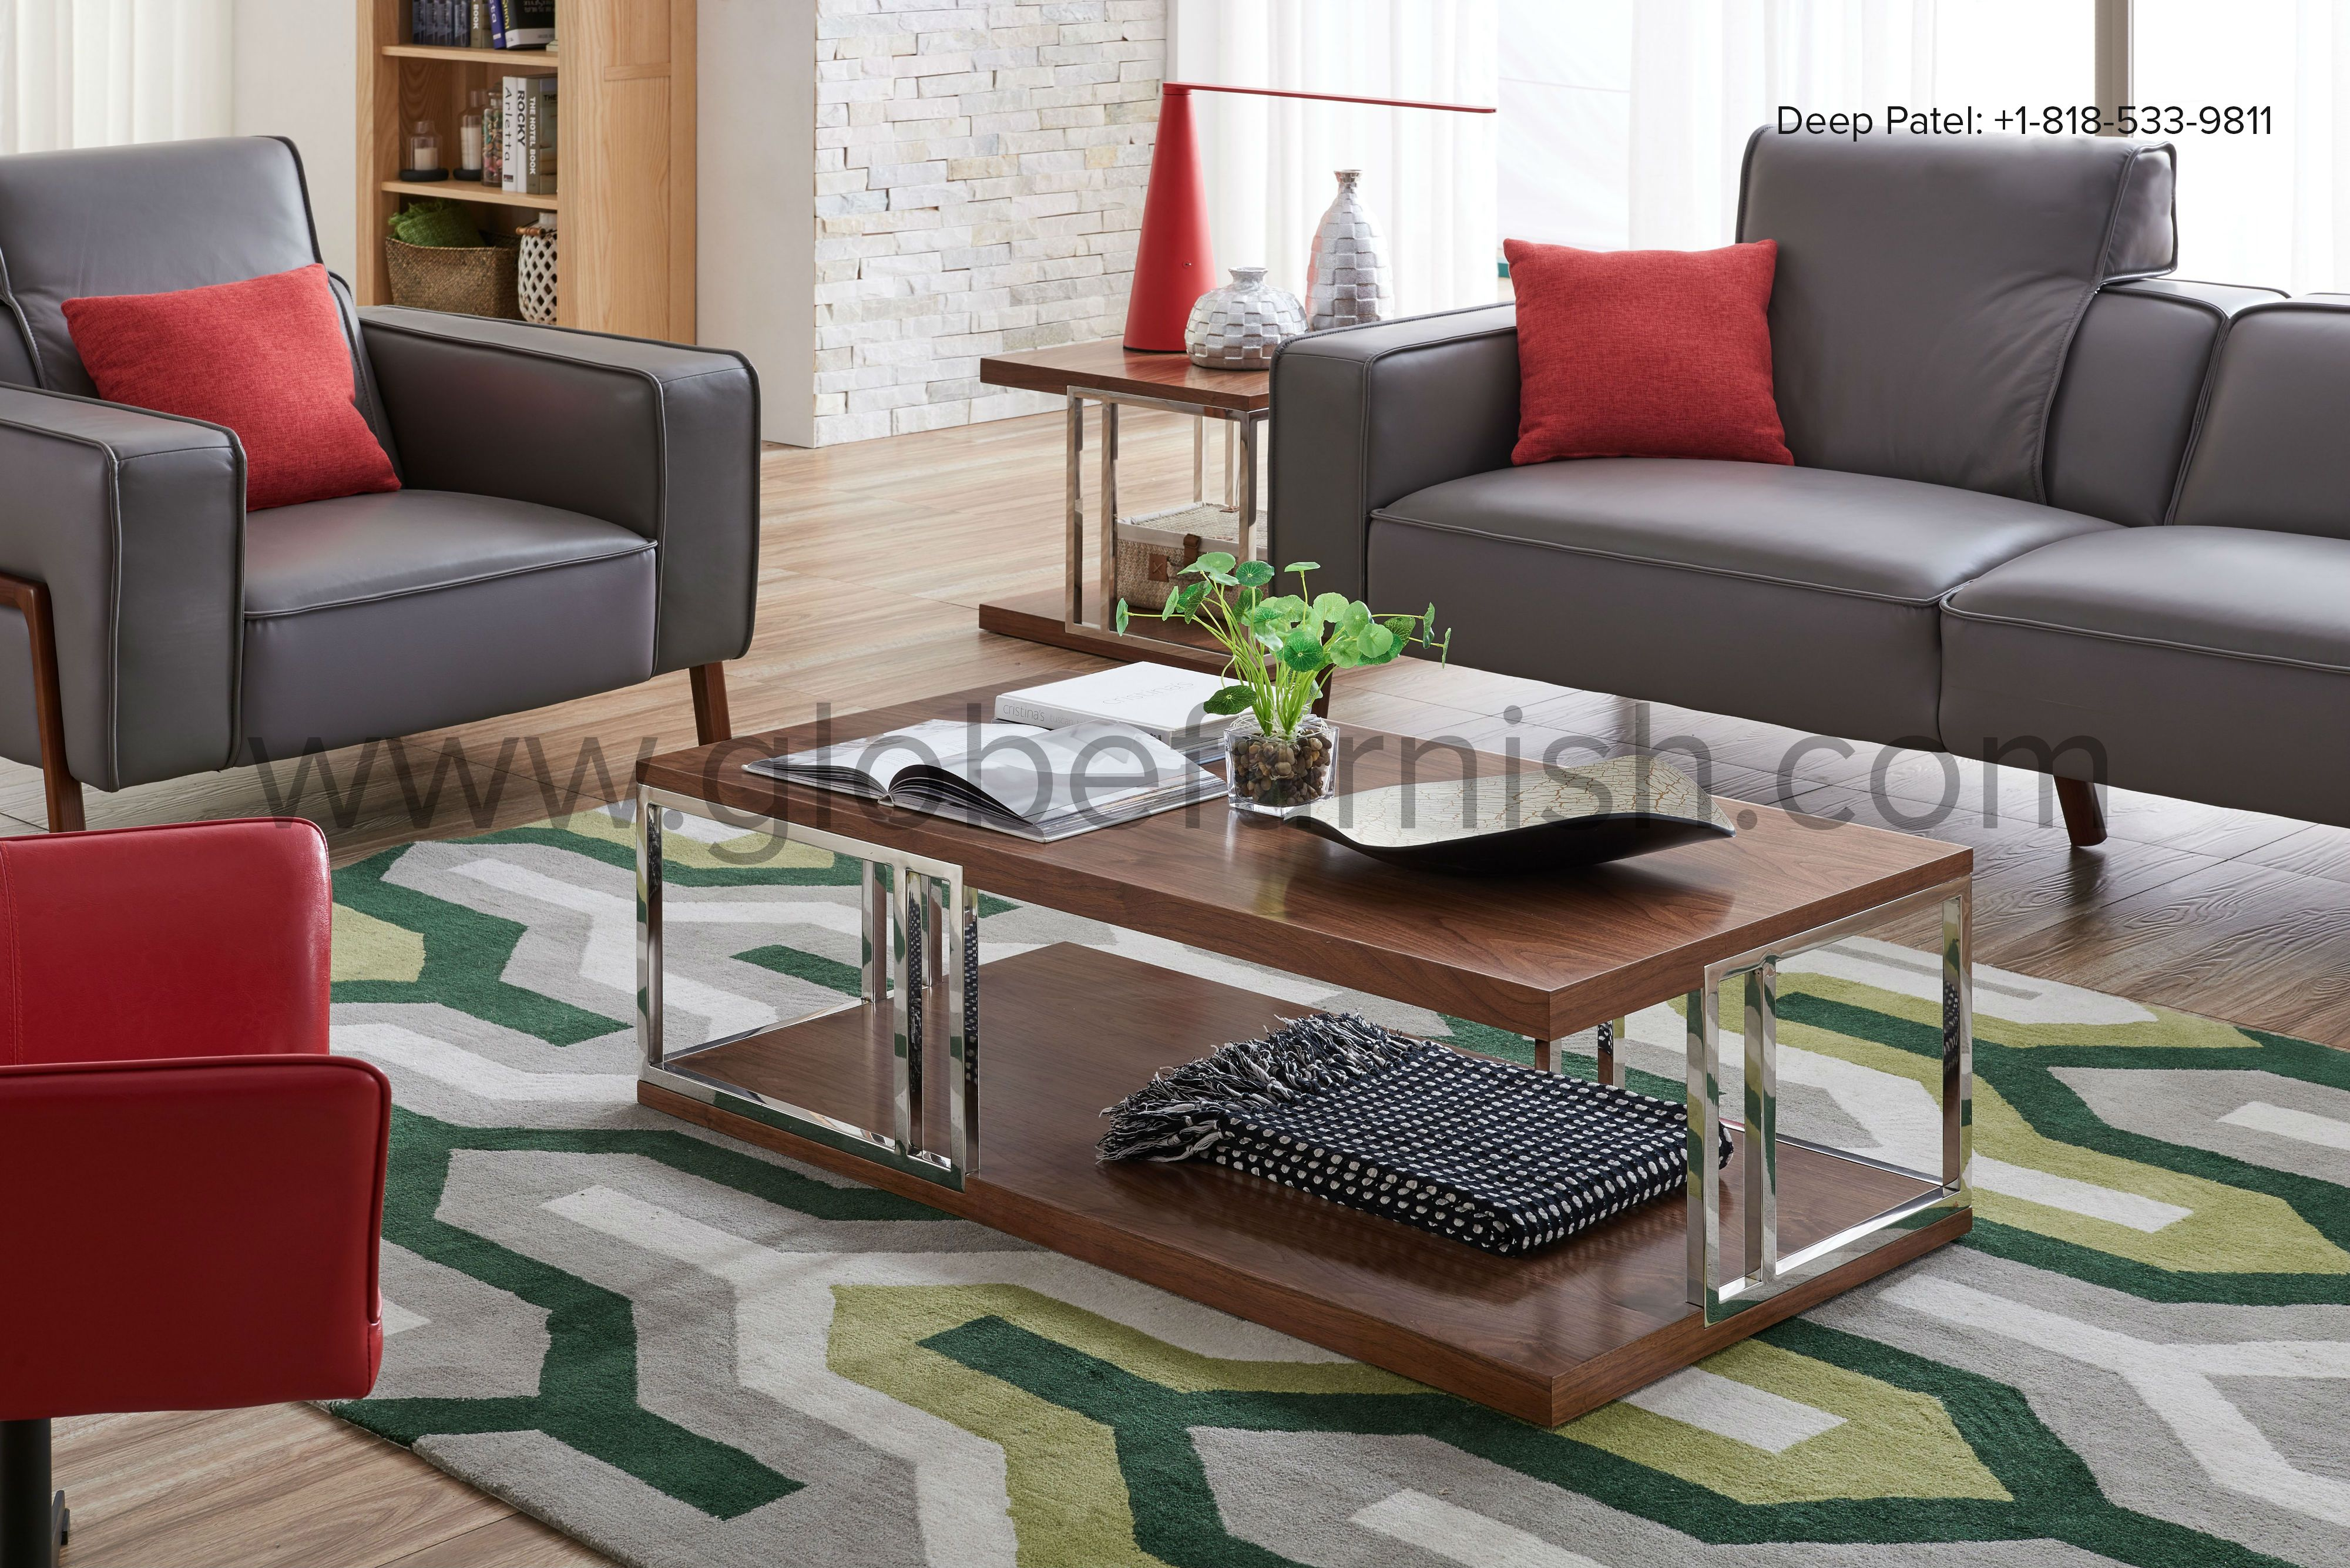 For A Contrasting Effect Own These Dark Grey Leather Sofas With Red Pillows Accompanied By Wood And Metal Center Table With Multicolor Floor Mat Furniture C